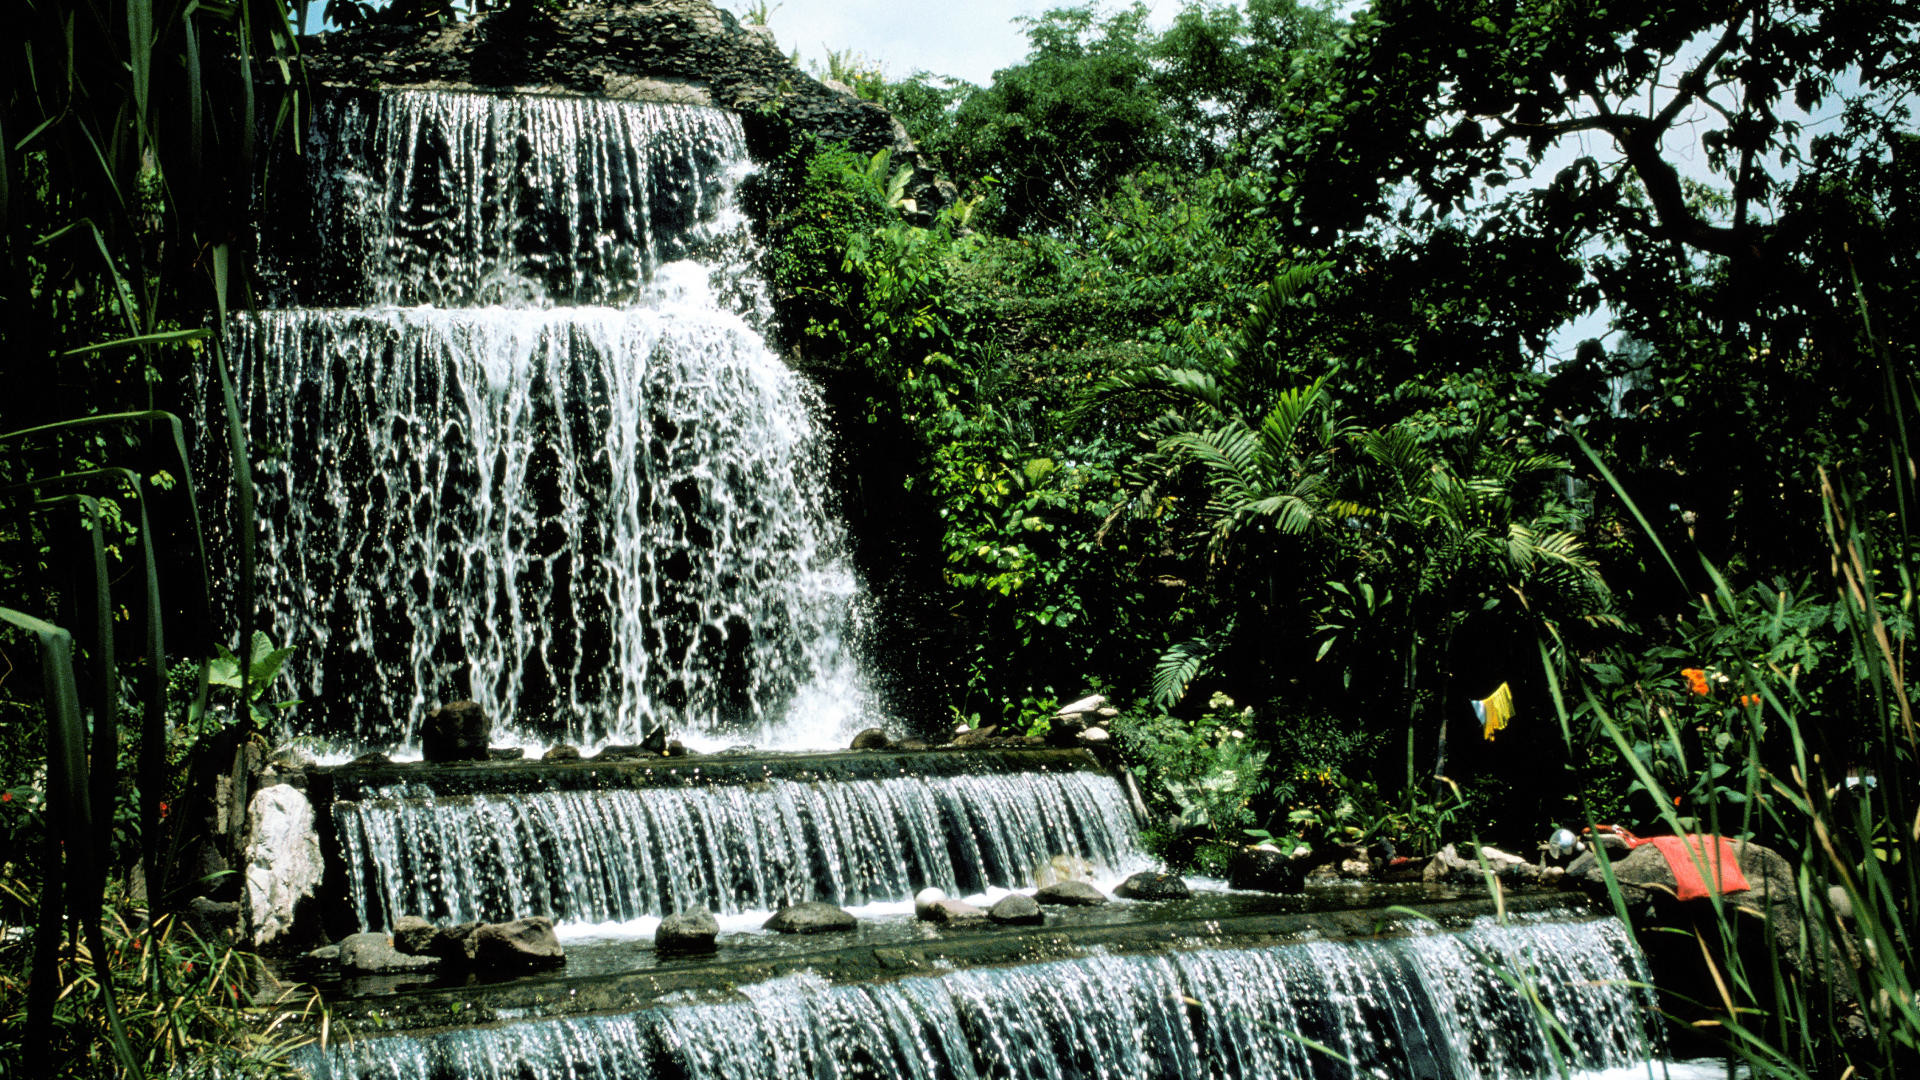 1920x1080 Cool backgrounds wallpapers philippines manila background waterfall laptop  desktop